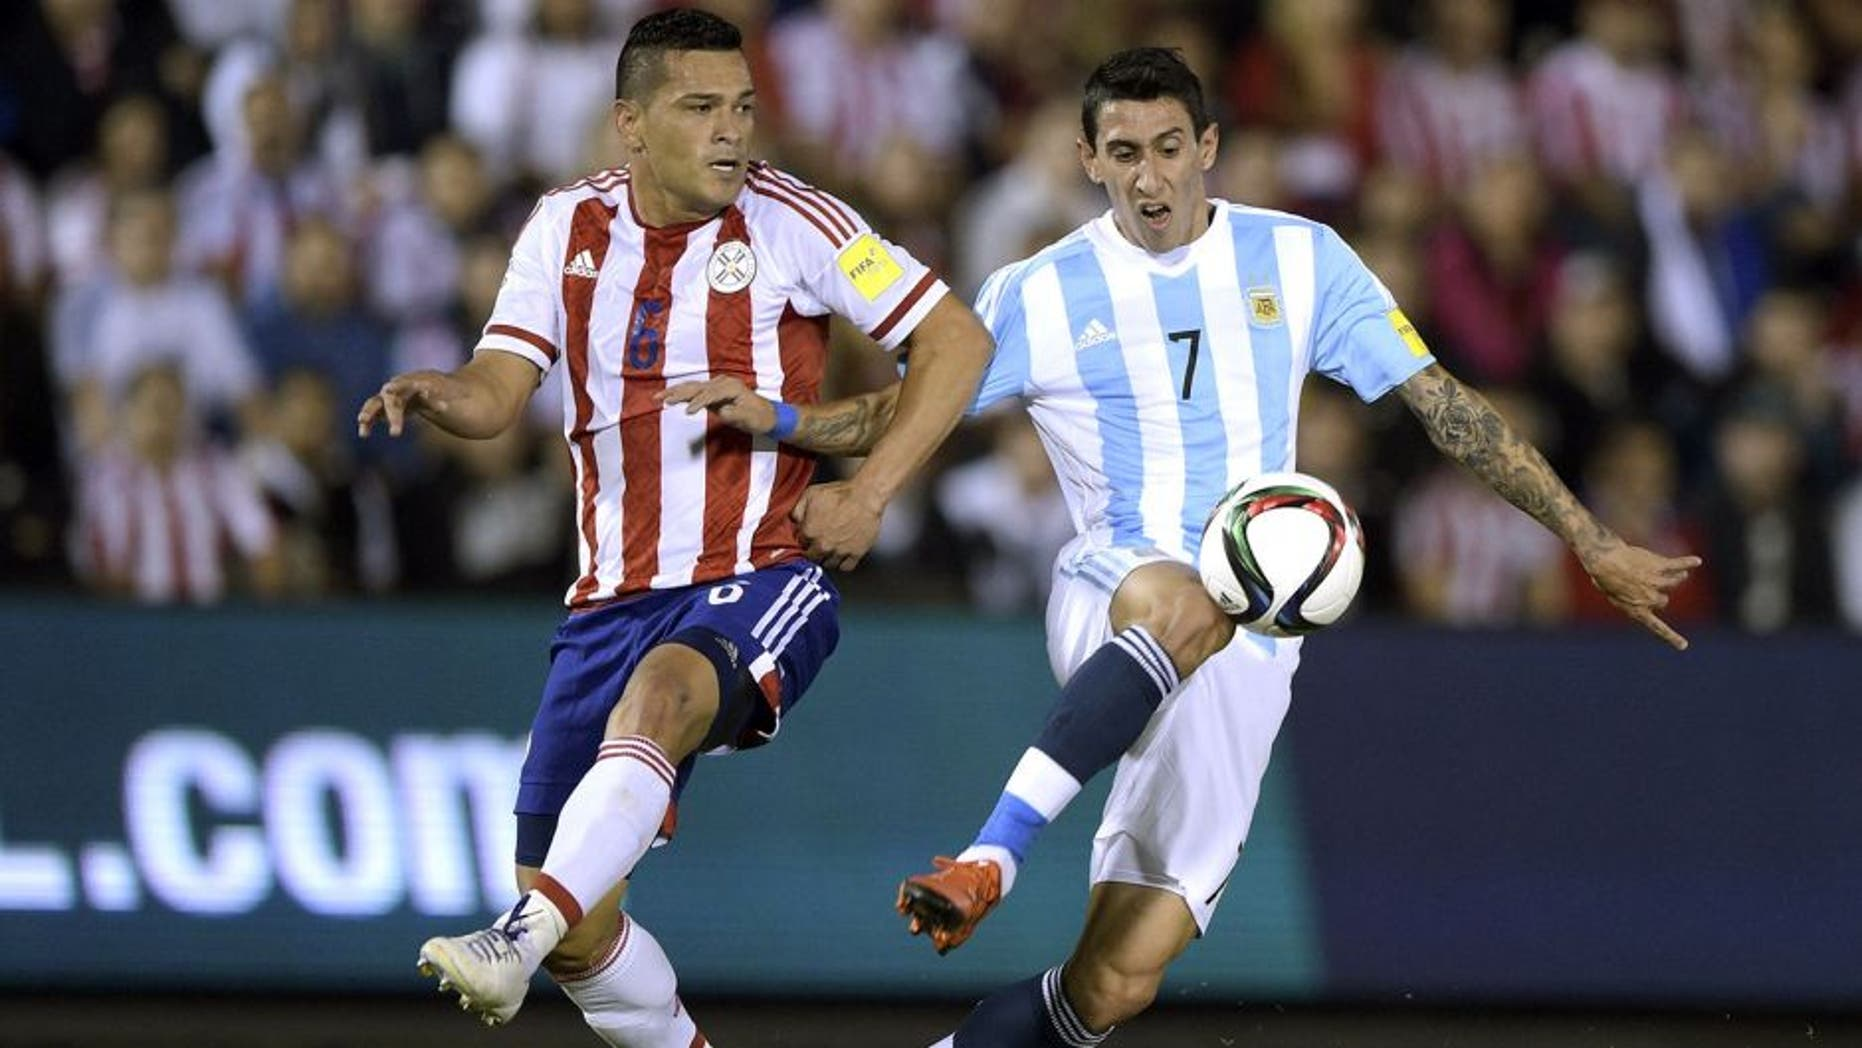 Paraguay's Miguel Angel Samudio (L) and Argentina's forward Angel Di Maria vie for the ball during their Russia 2018 FIFA World Cup South American Qualifiers football match, at the Defensores del Chaco stadium in Asuncion, on October 13, 2015. AFP PHOTO / JUAN MABROMATA (Photo credit should read JUAN MABROMATA/AFP/Getty Images)